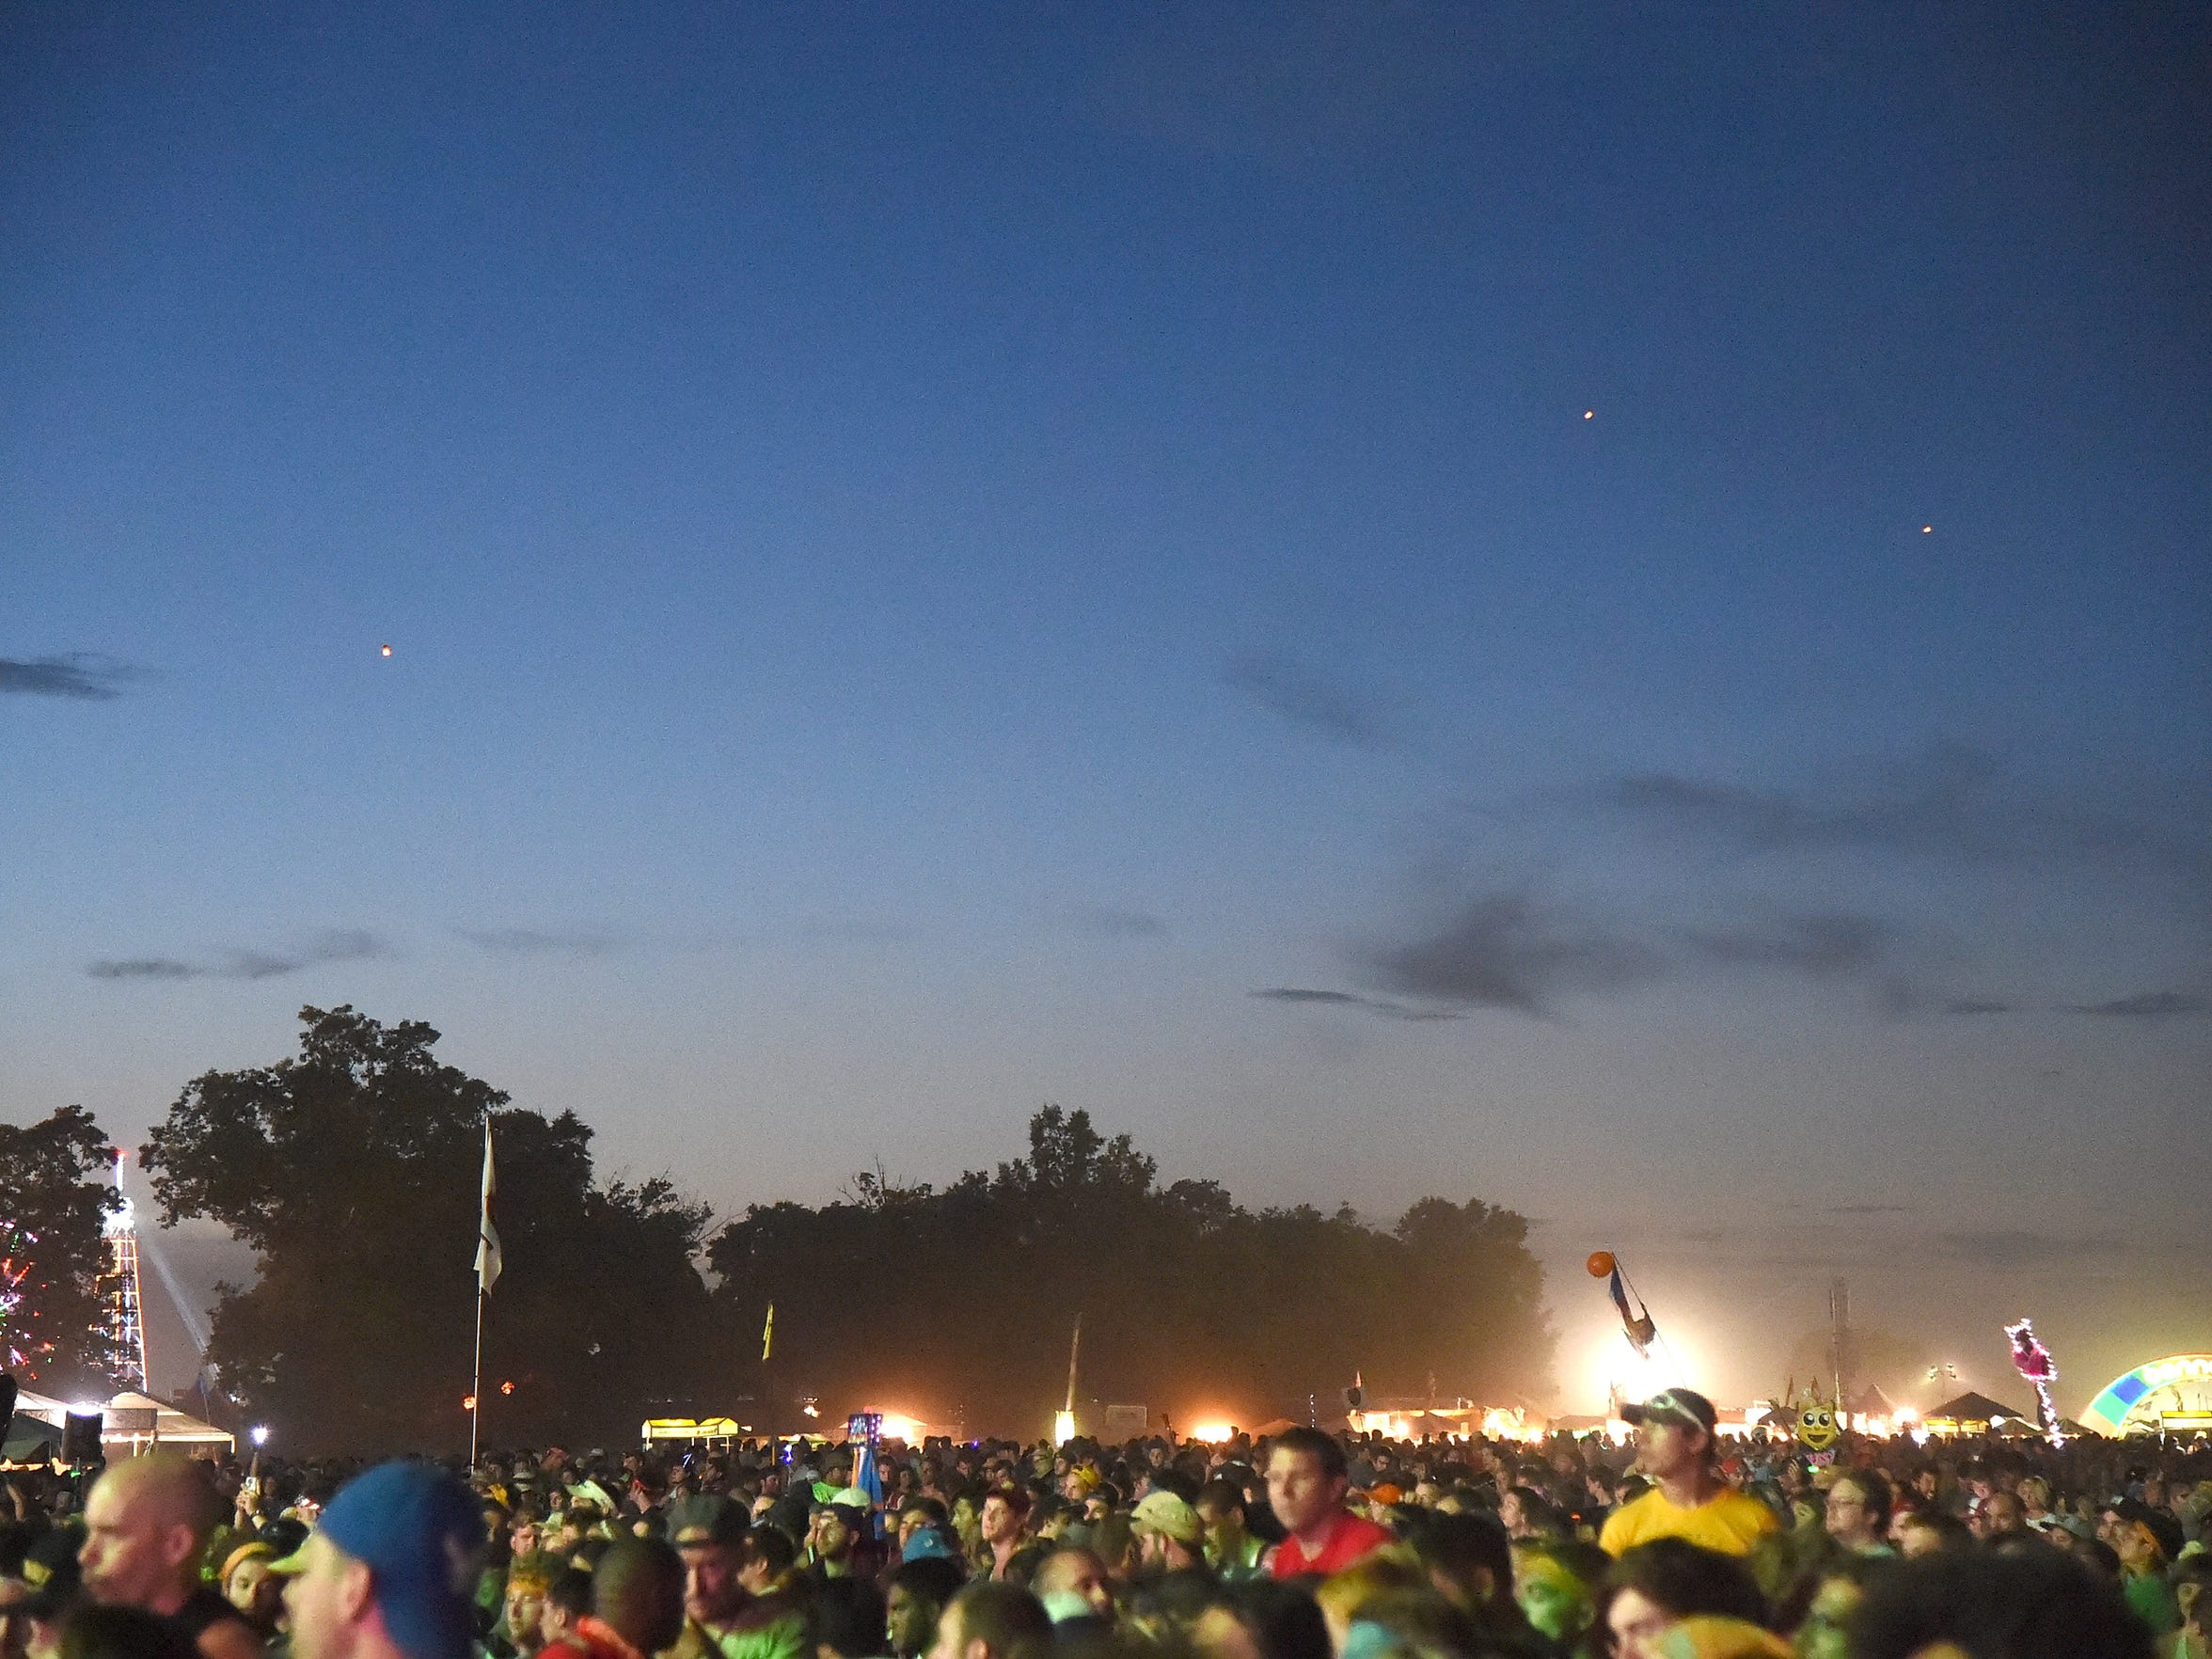 The night sky on June 14, 2015 iduring Bonnaroo.